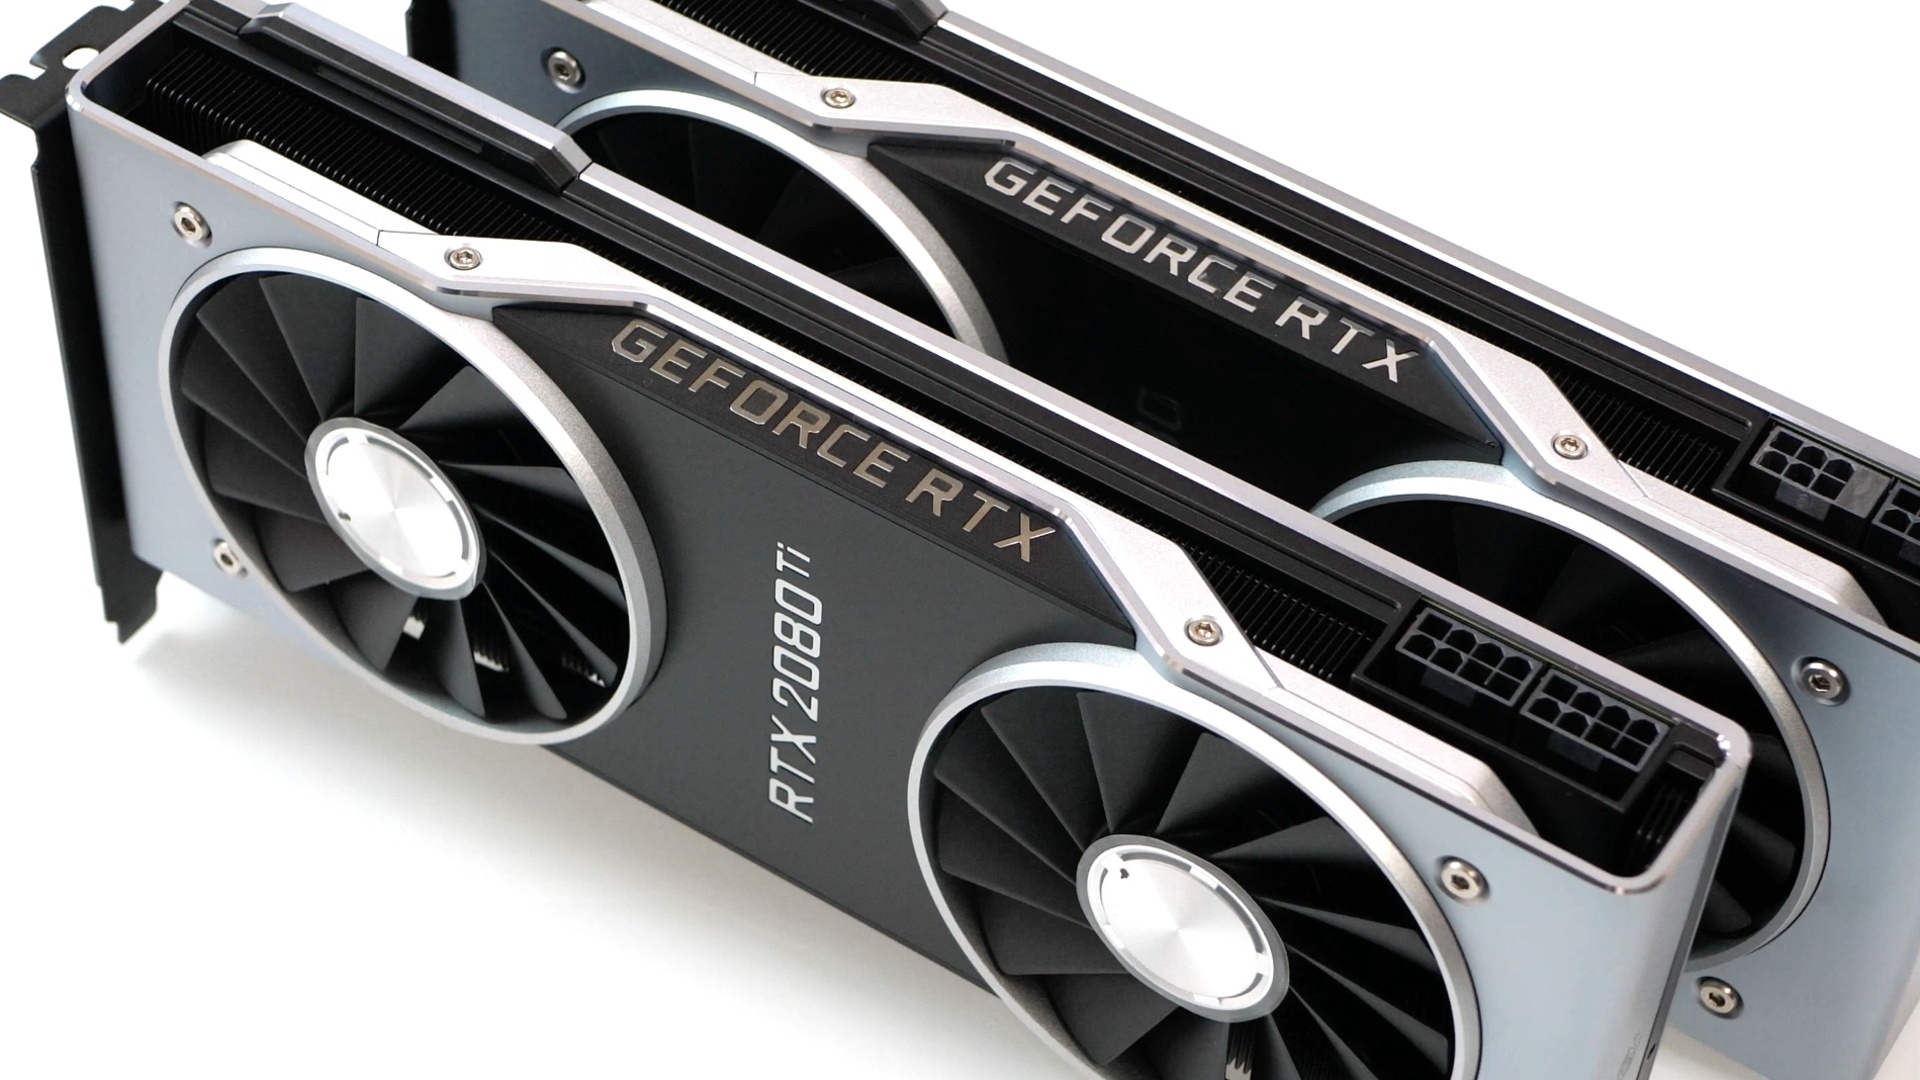 Geforce Rtx 2080 Rtx 2080 Ti Is Dlss A Game Changer